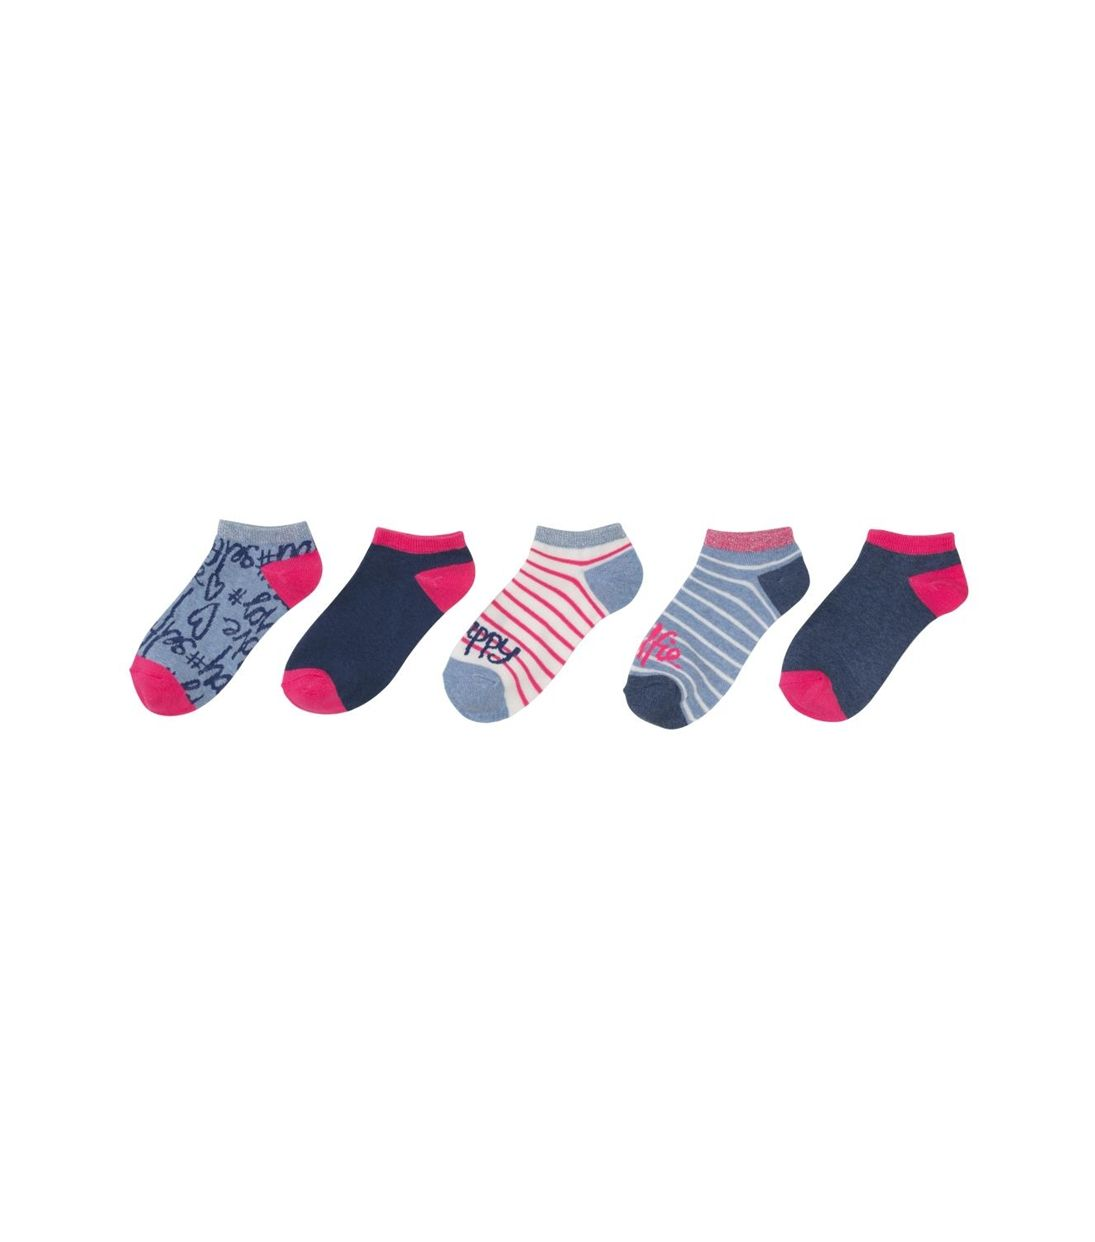 5-pack Childrens Ankle Socks (White) HEMA Manchester Great Sale Sale Online Sale Collections Cheap Sale Pay With Visa Pay With Visa Cheap Online zBsHDGUr